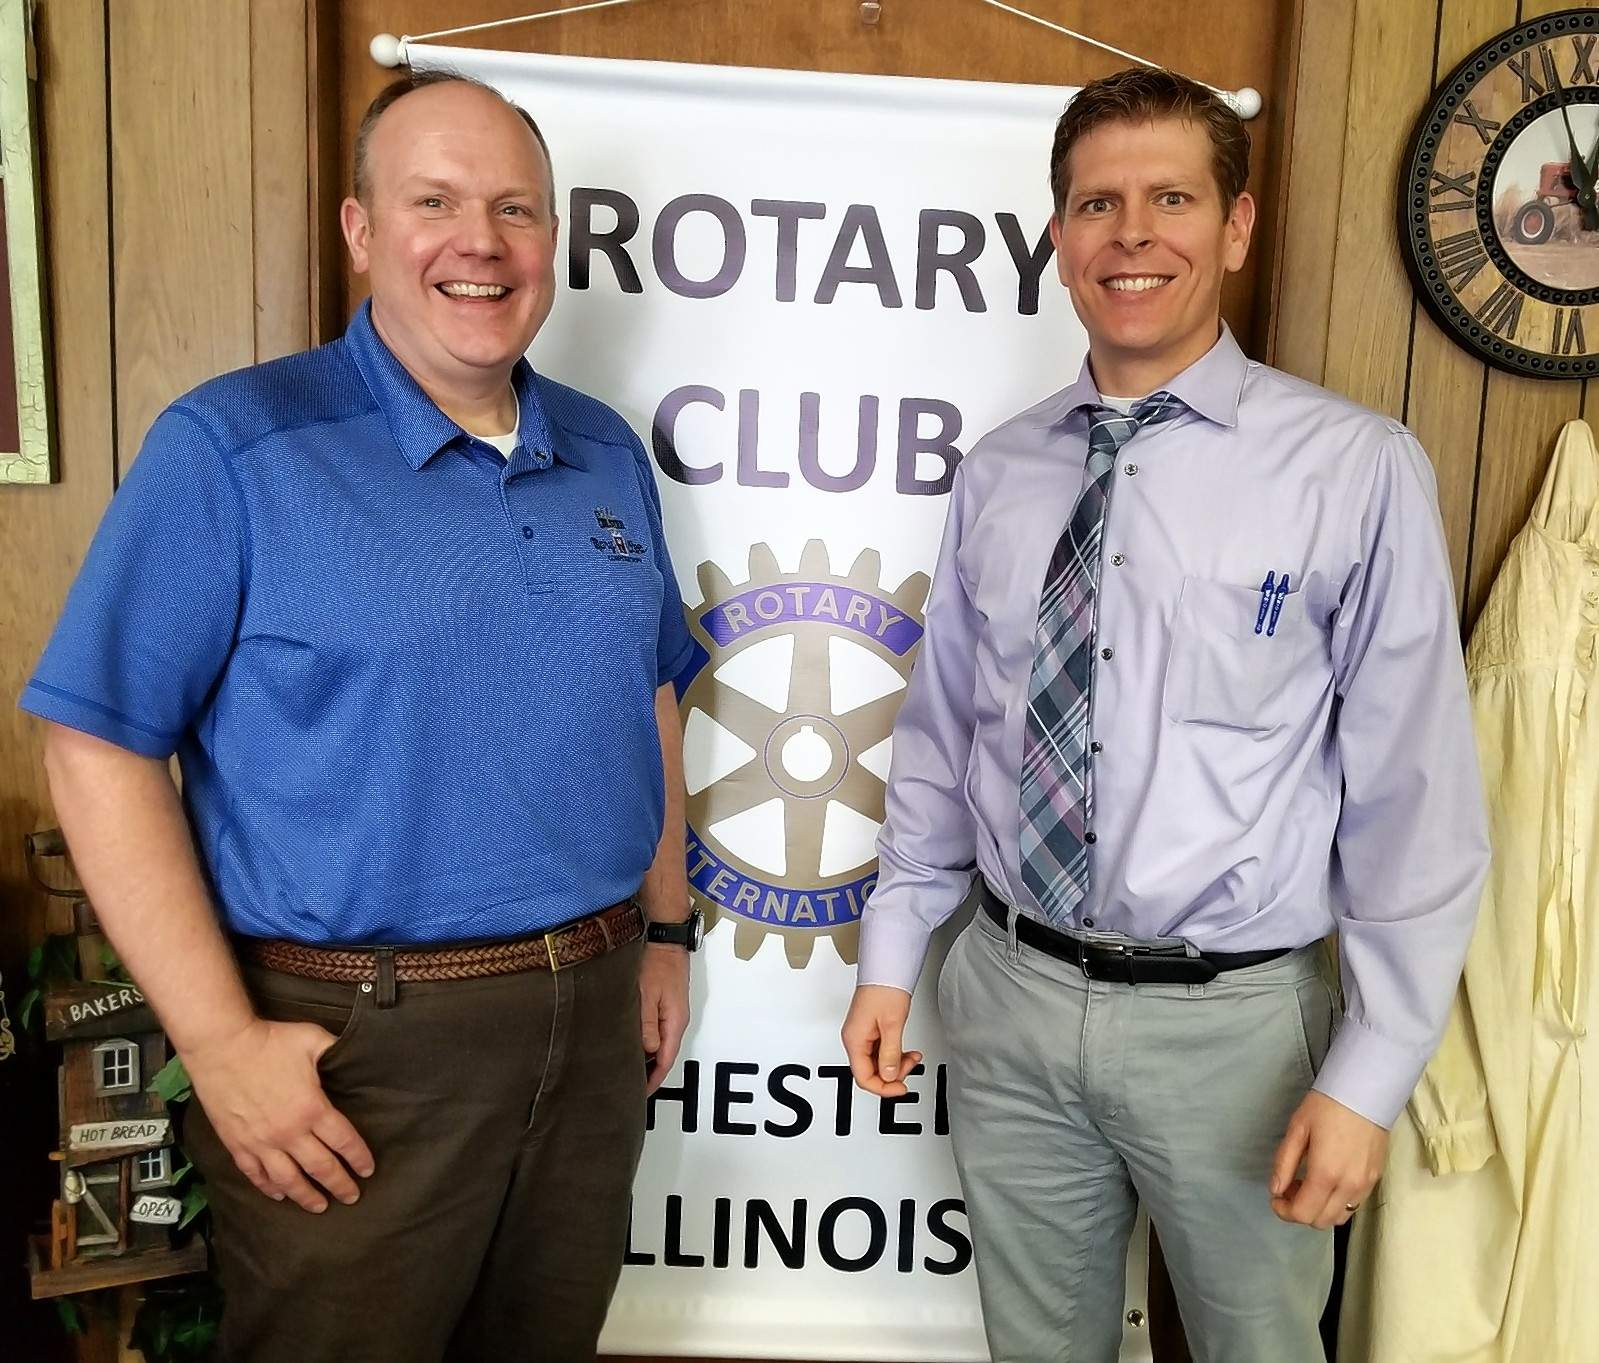 Tom Welge, left, was the guest speaker March 13 at the Chester Rotary Club. He is pictured with Rotary President Jeremy Walker.